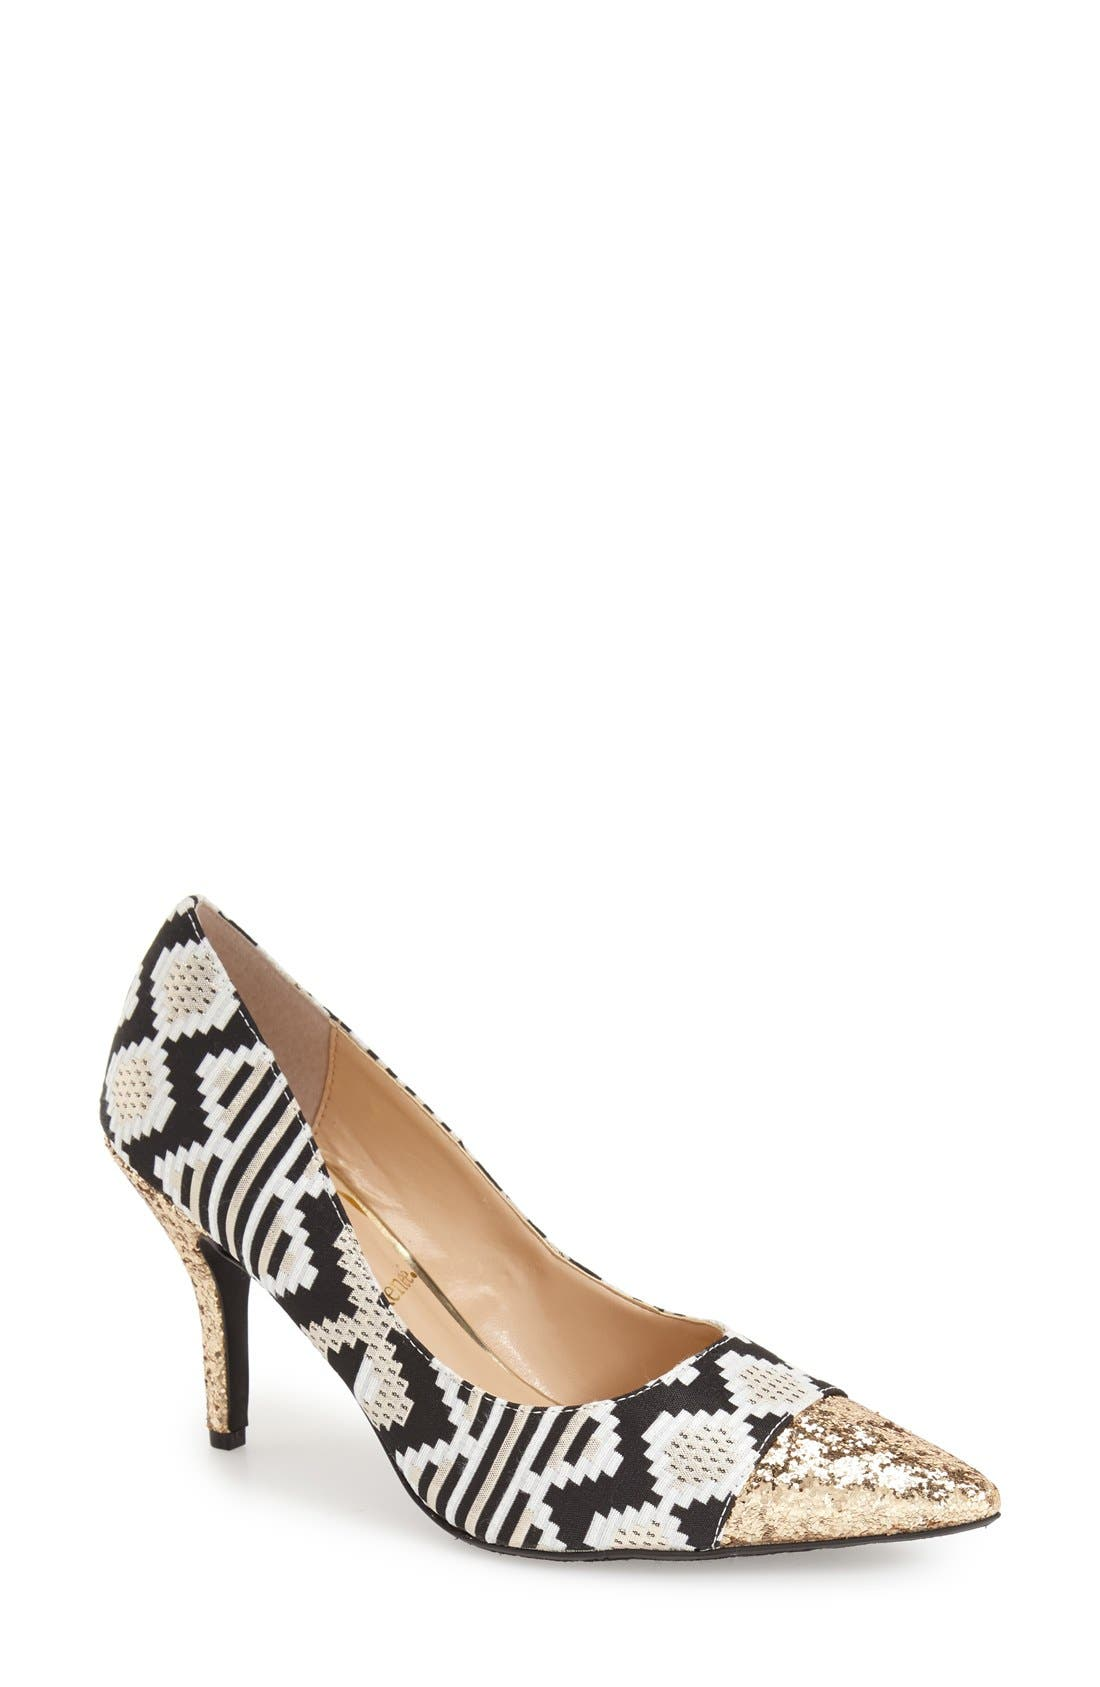 Main Image - J. Reneé 'Ryenne' Pointy Toe Pump (Women)